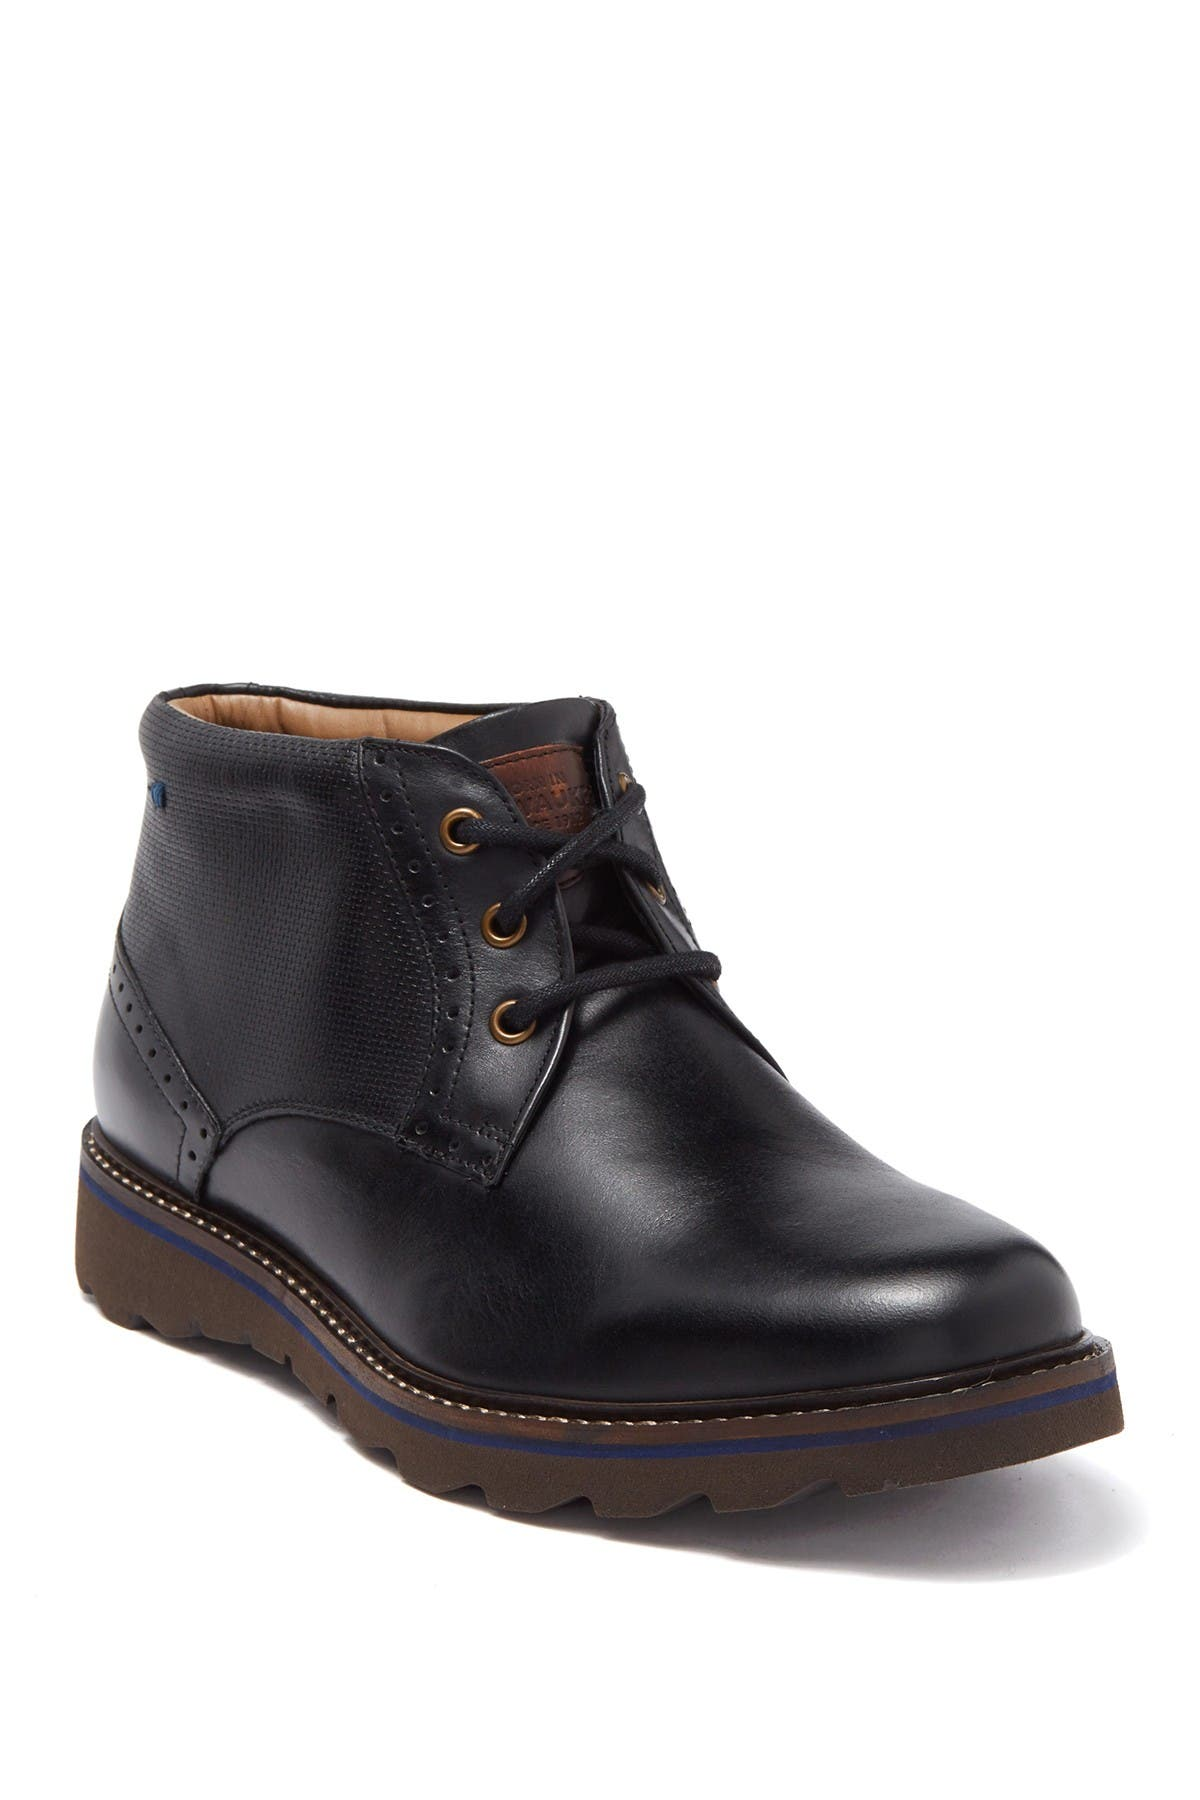 Image of NUNN BUSH Buchanan Plain Toe Boot - Wide Width Available